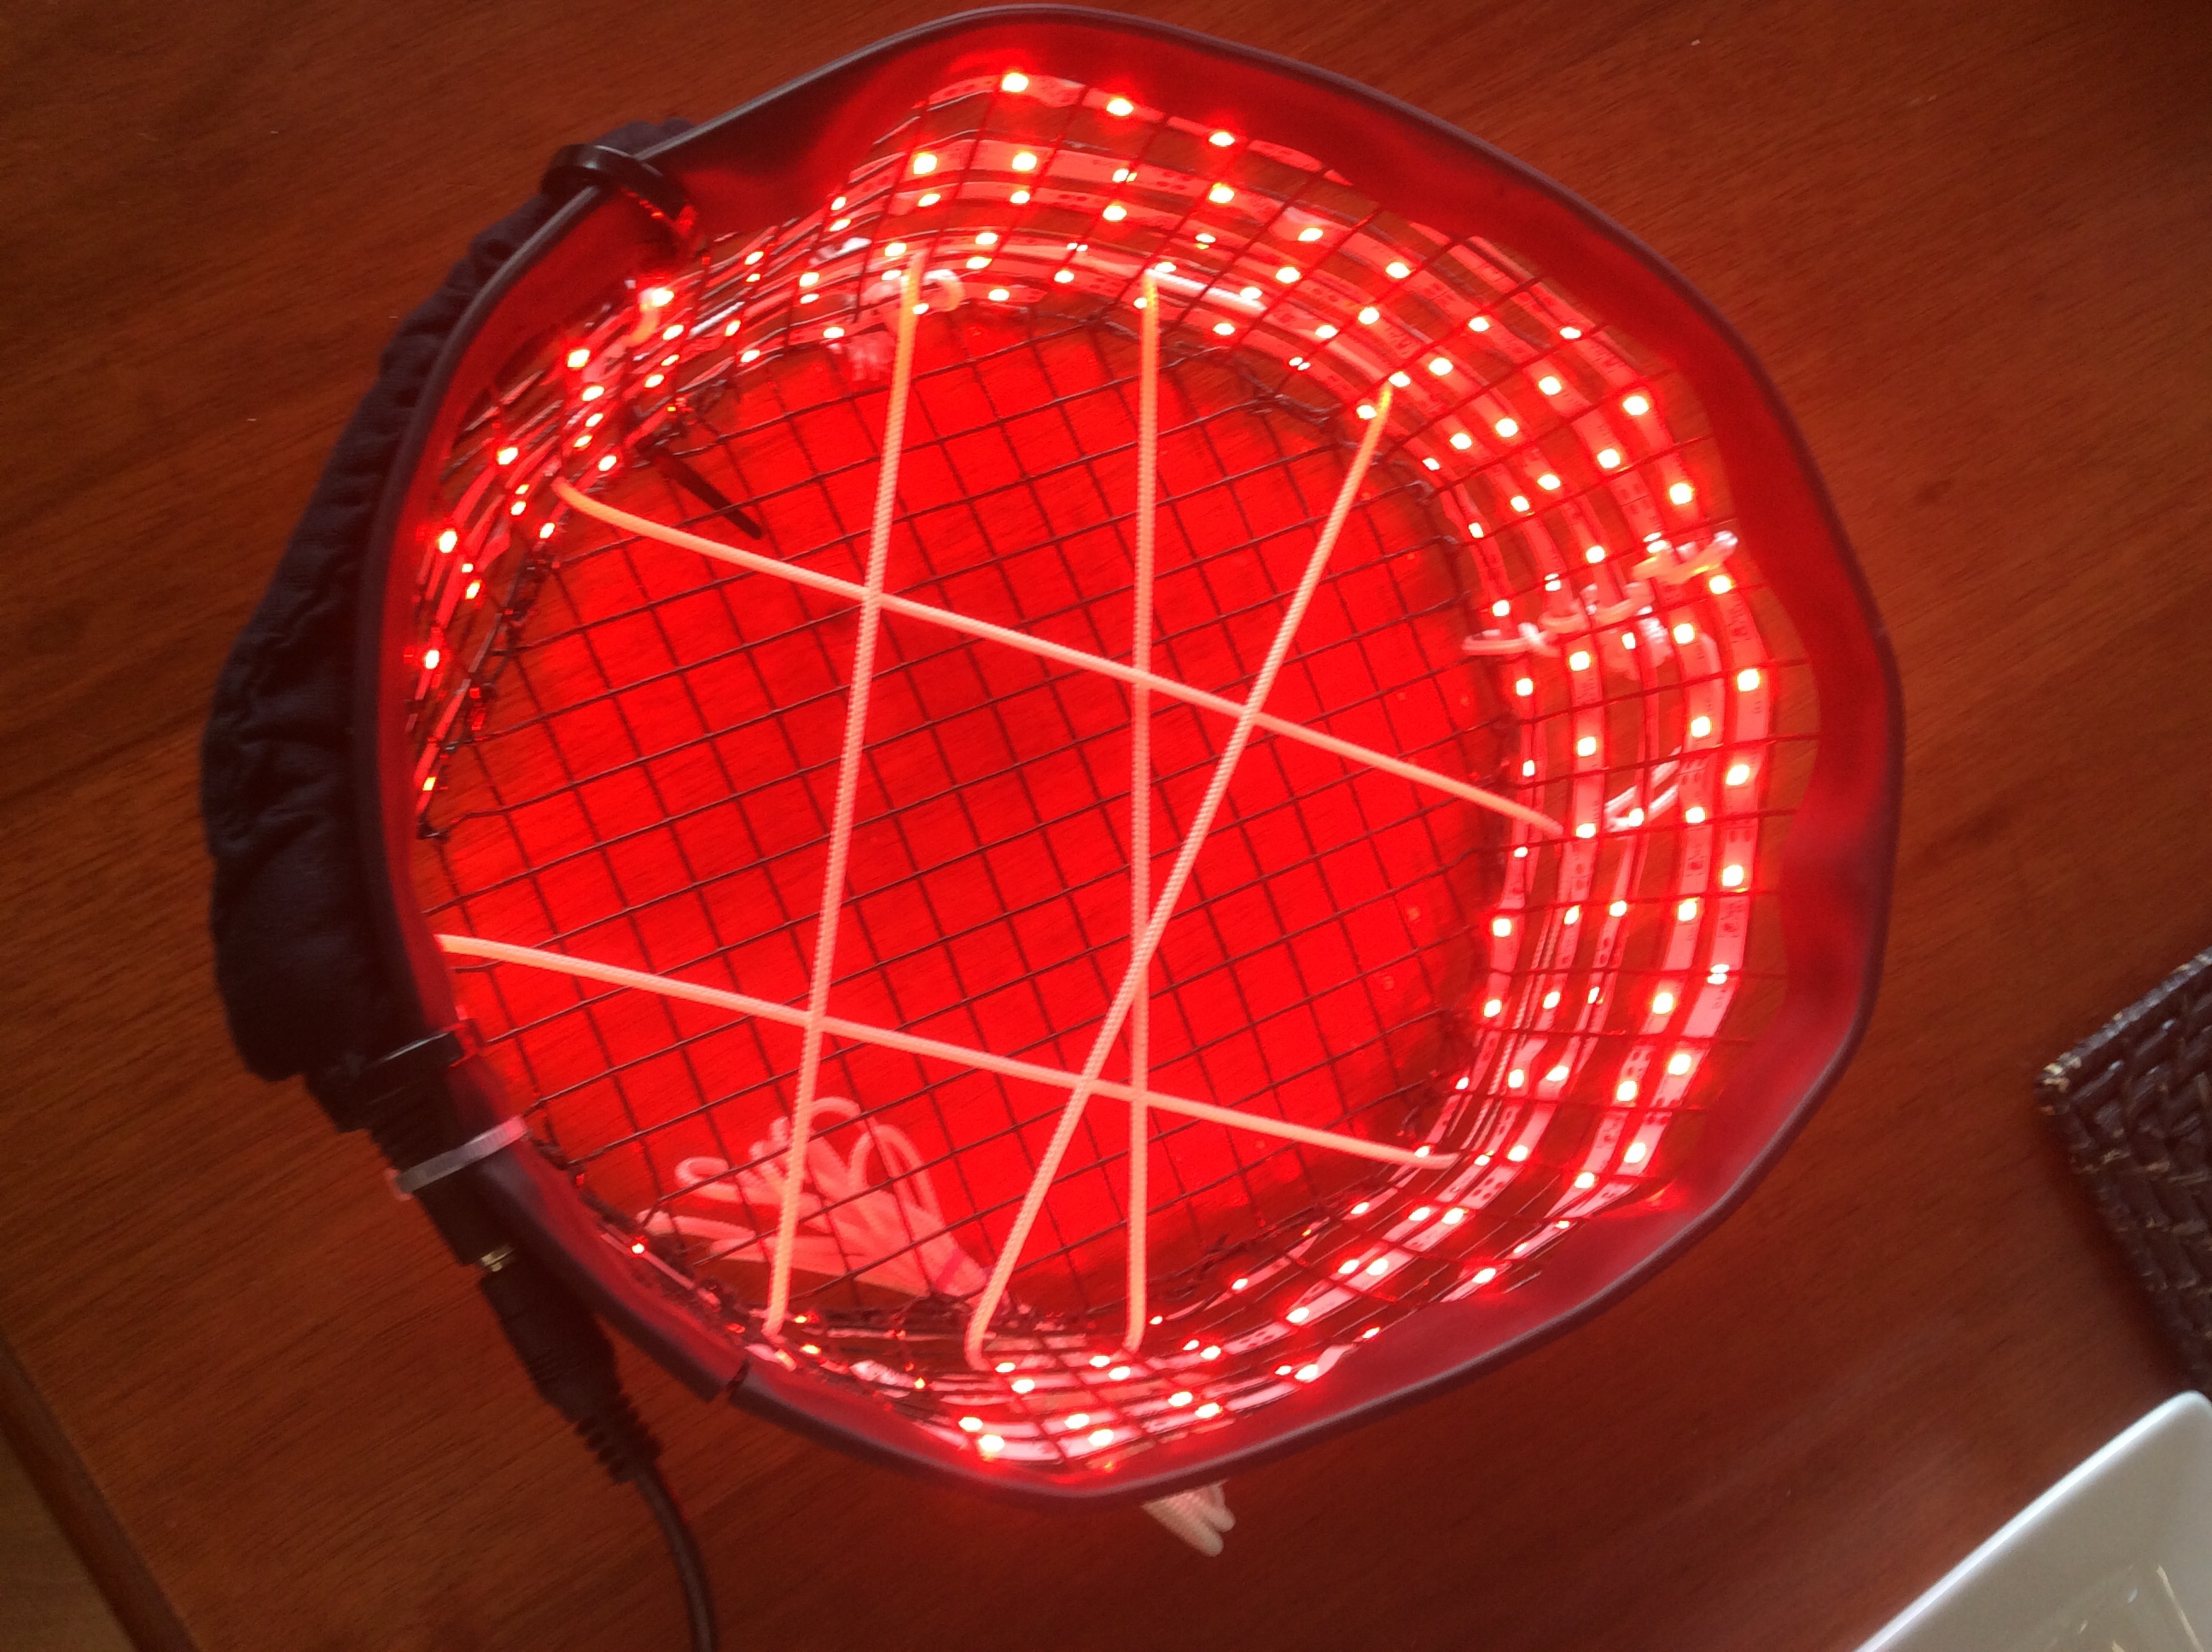 This is a Cossack light hat - the instructions for making this are on the blog. The Cossack uses LED strip - you can see the strip wound around the frame.